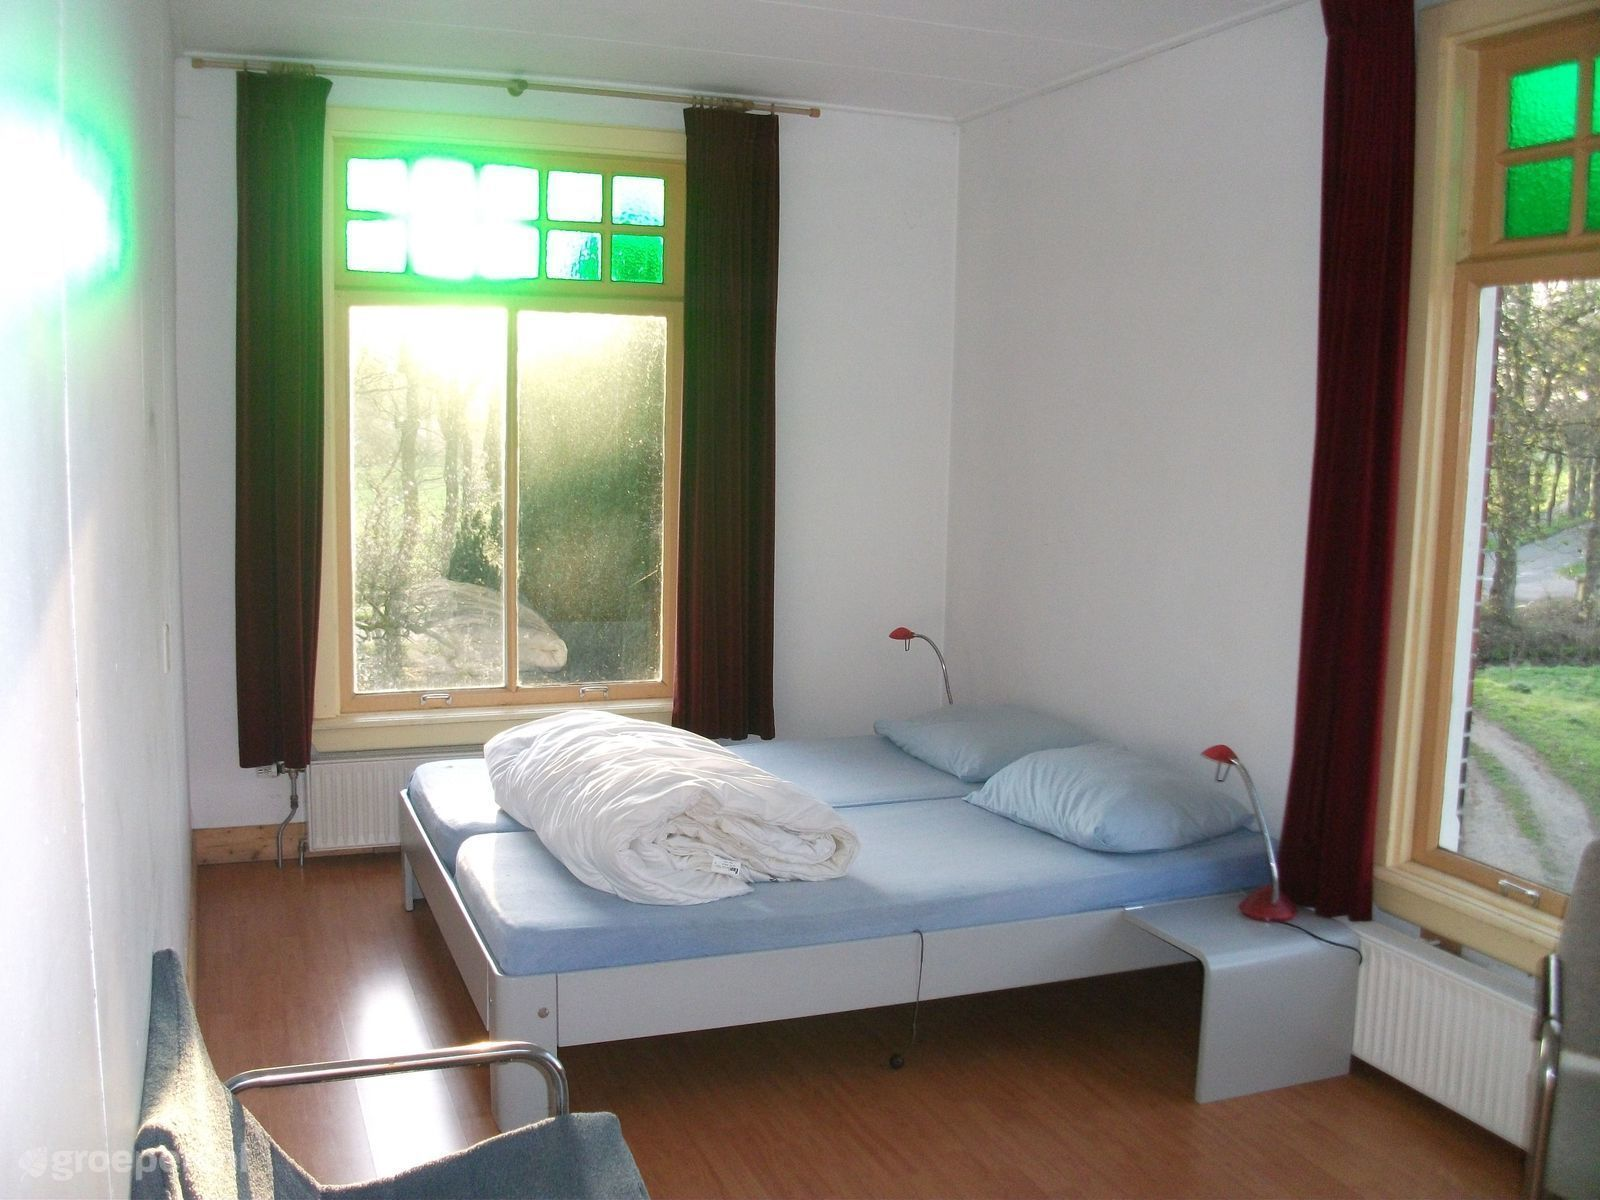 Group accommodation Schiphorst